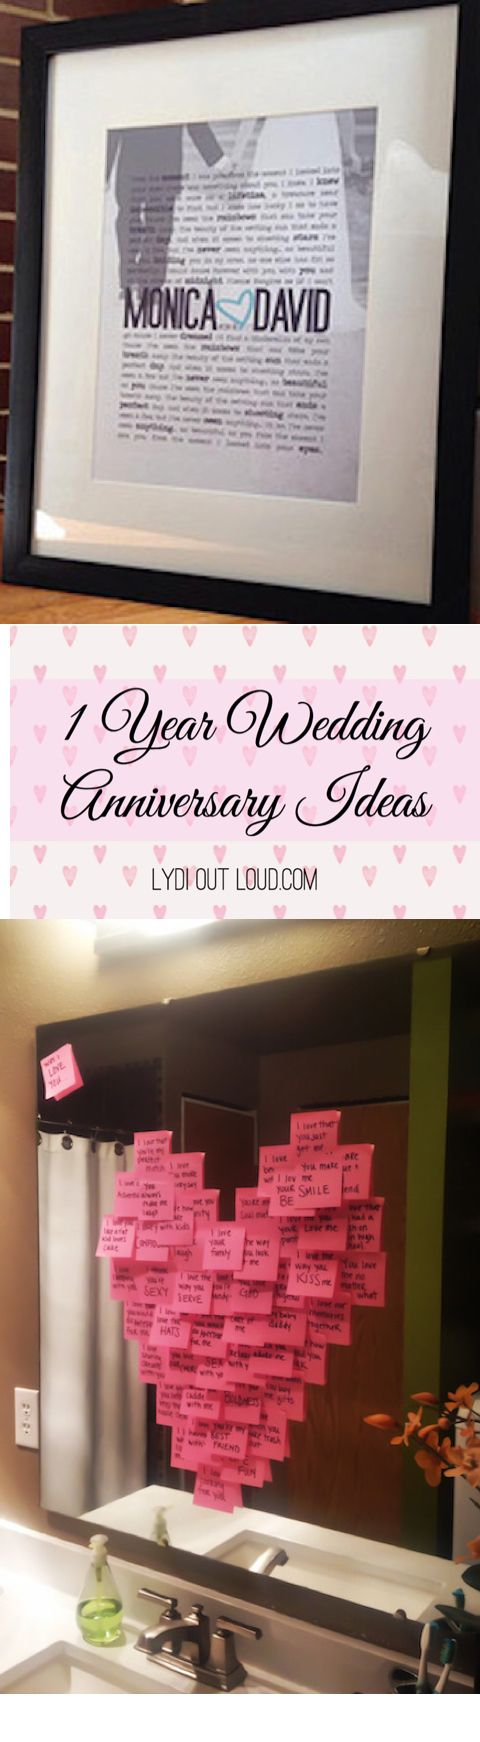 1 Year Wedding Anniversary Ideas For Him : Year Anniversary Gift Ideas First anniversary, Wedding and Lyrics